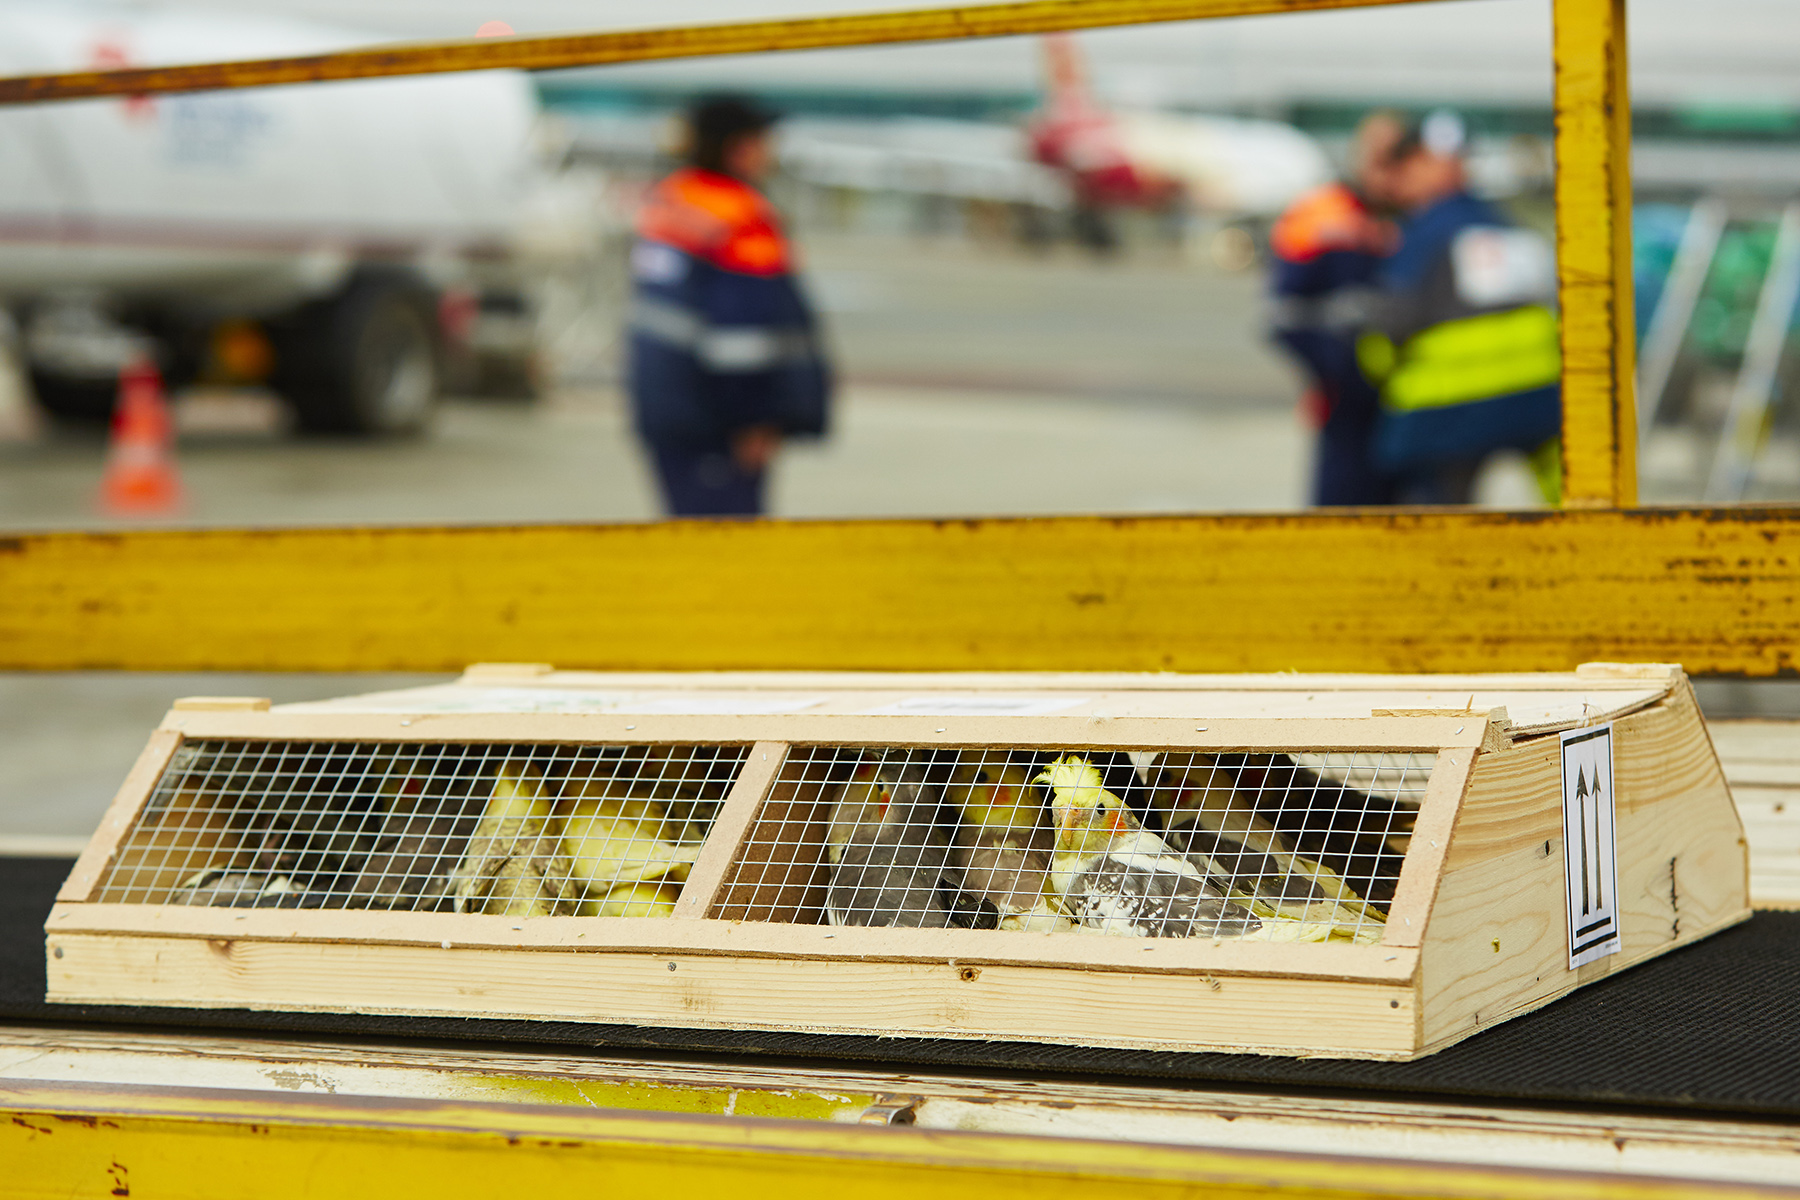 Bird crates waiting to be loaded at an airport